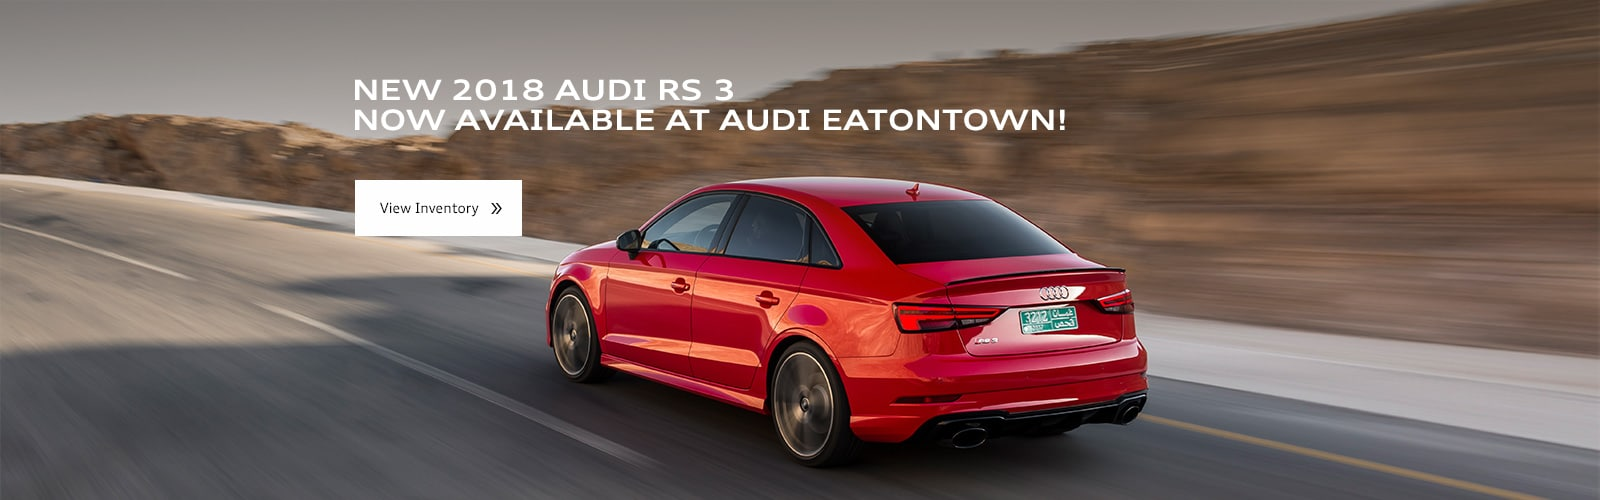 Eatontowns Audi Eatontown New And Used Audi Cars For Sale - Audi eatontown